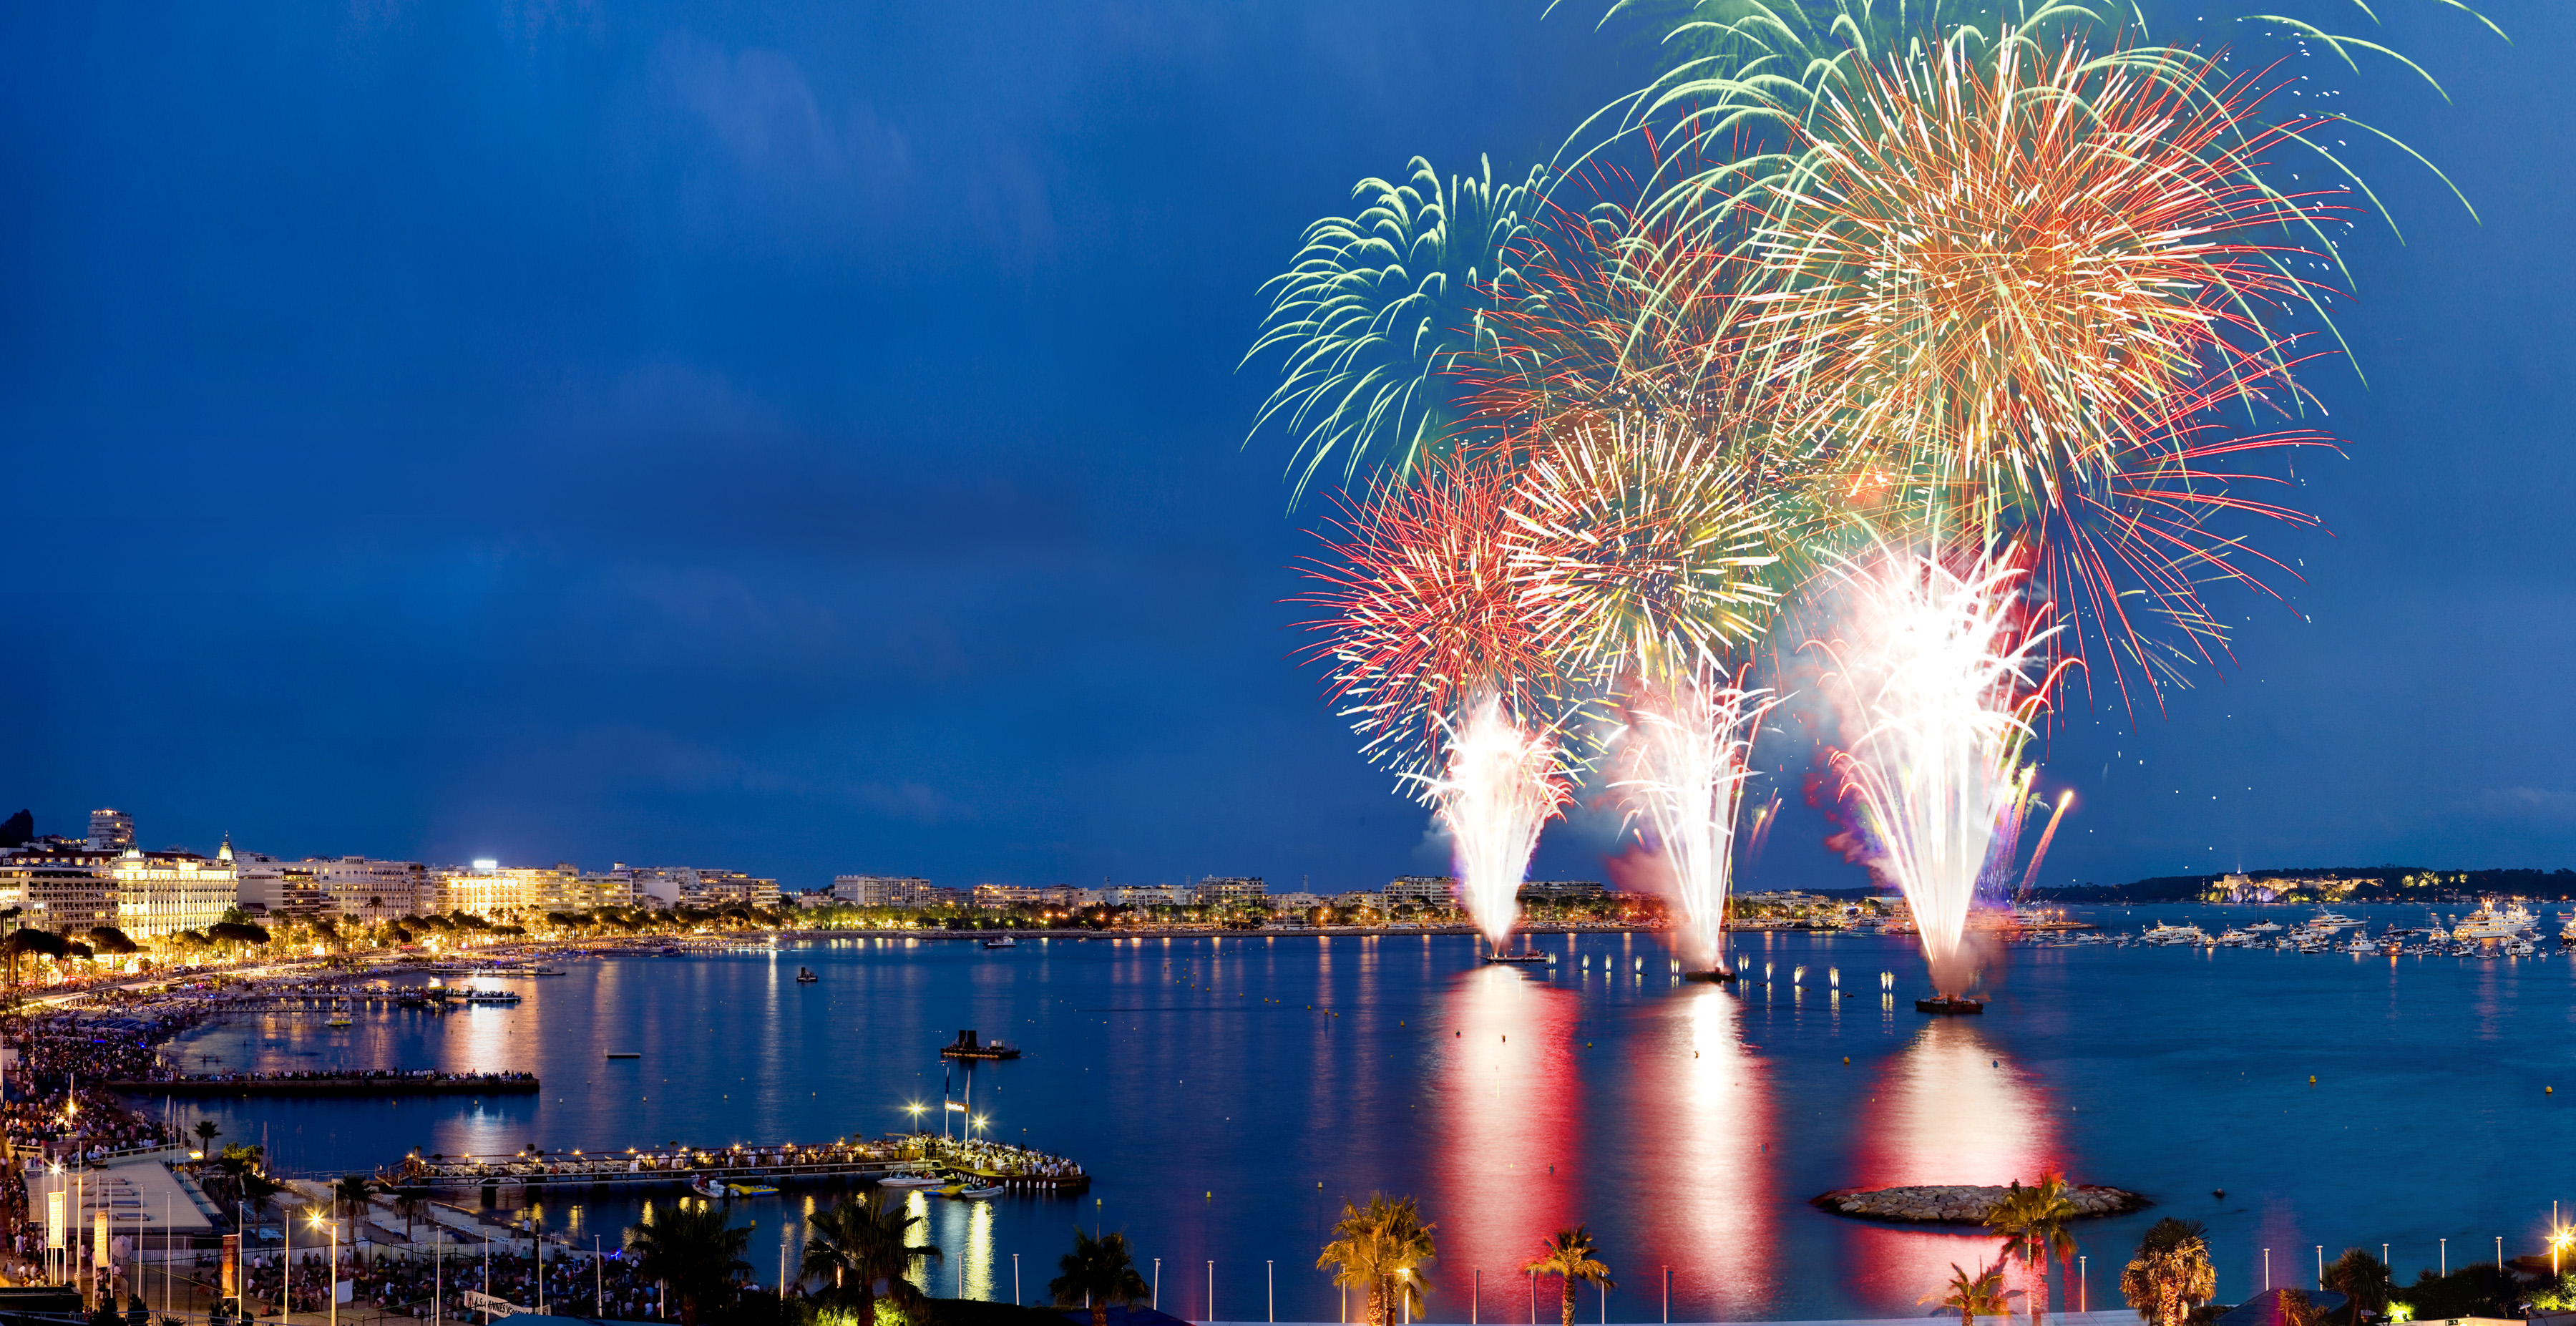 The Best Places To Watch The Fireworks In Cannes